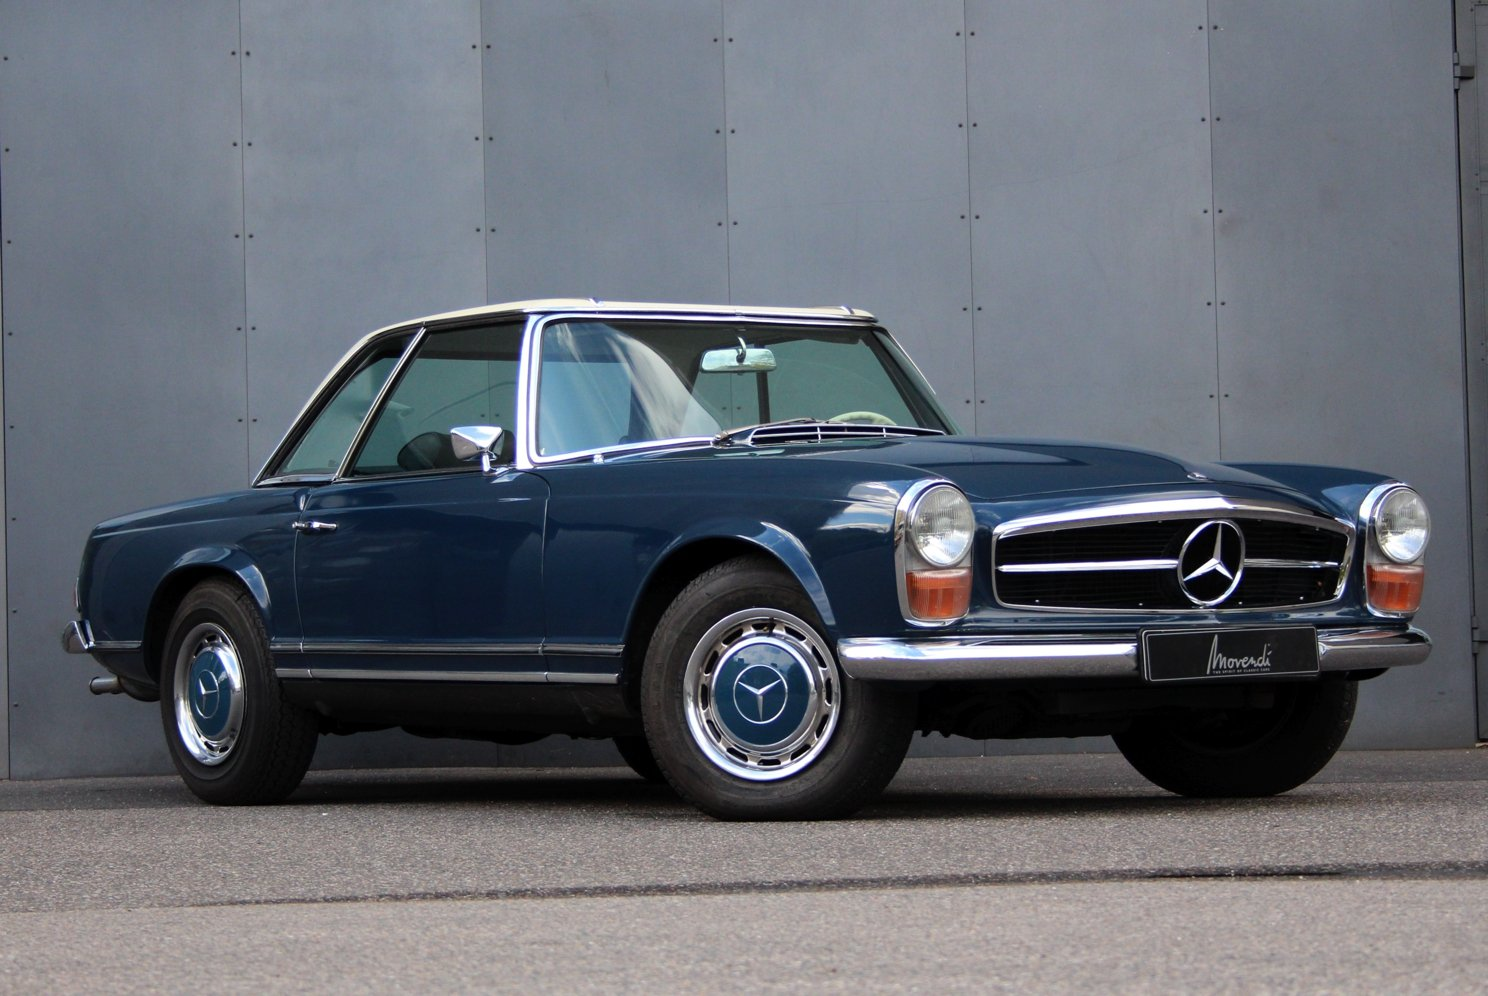 1963 Mercedes-Benz 280 SL Pagoda LHD (Automatic transmission) For Sale (picture 1 of 6)